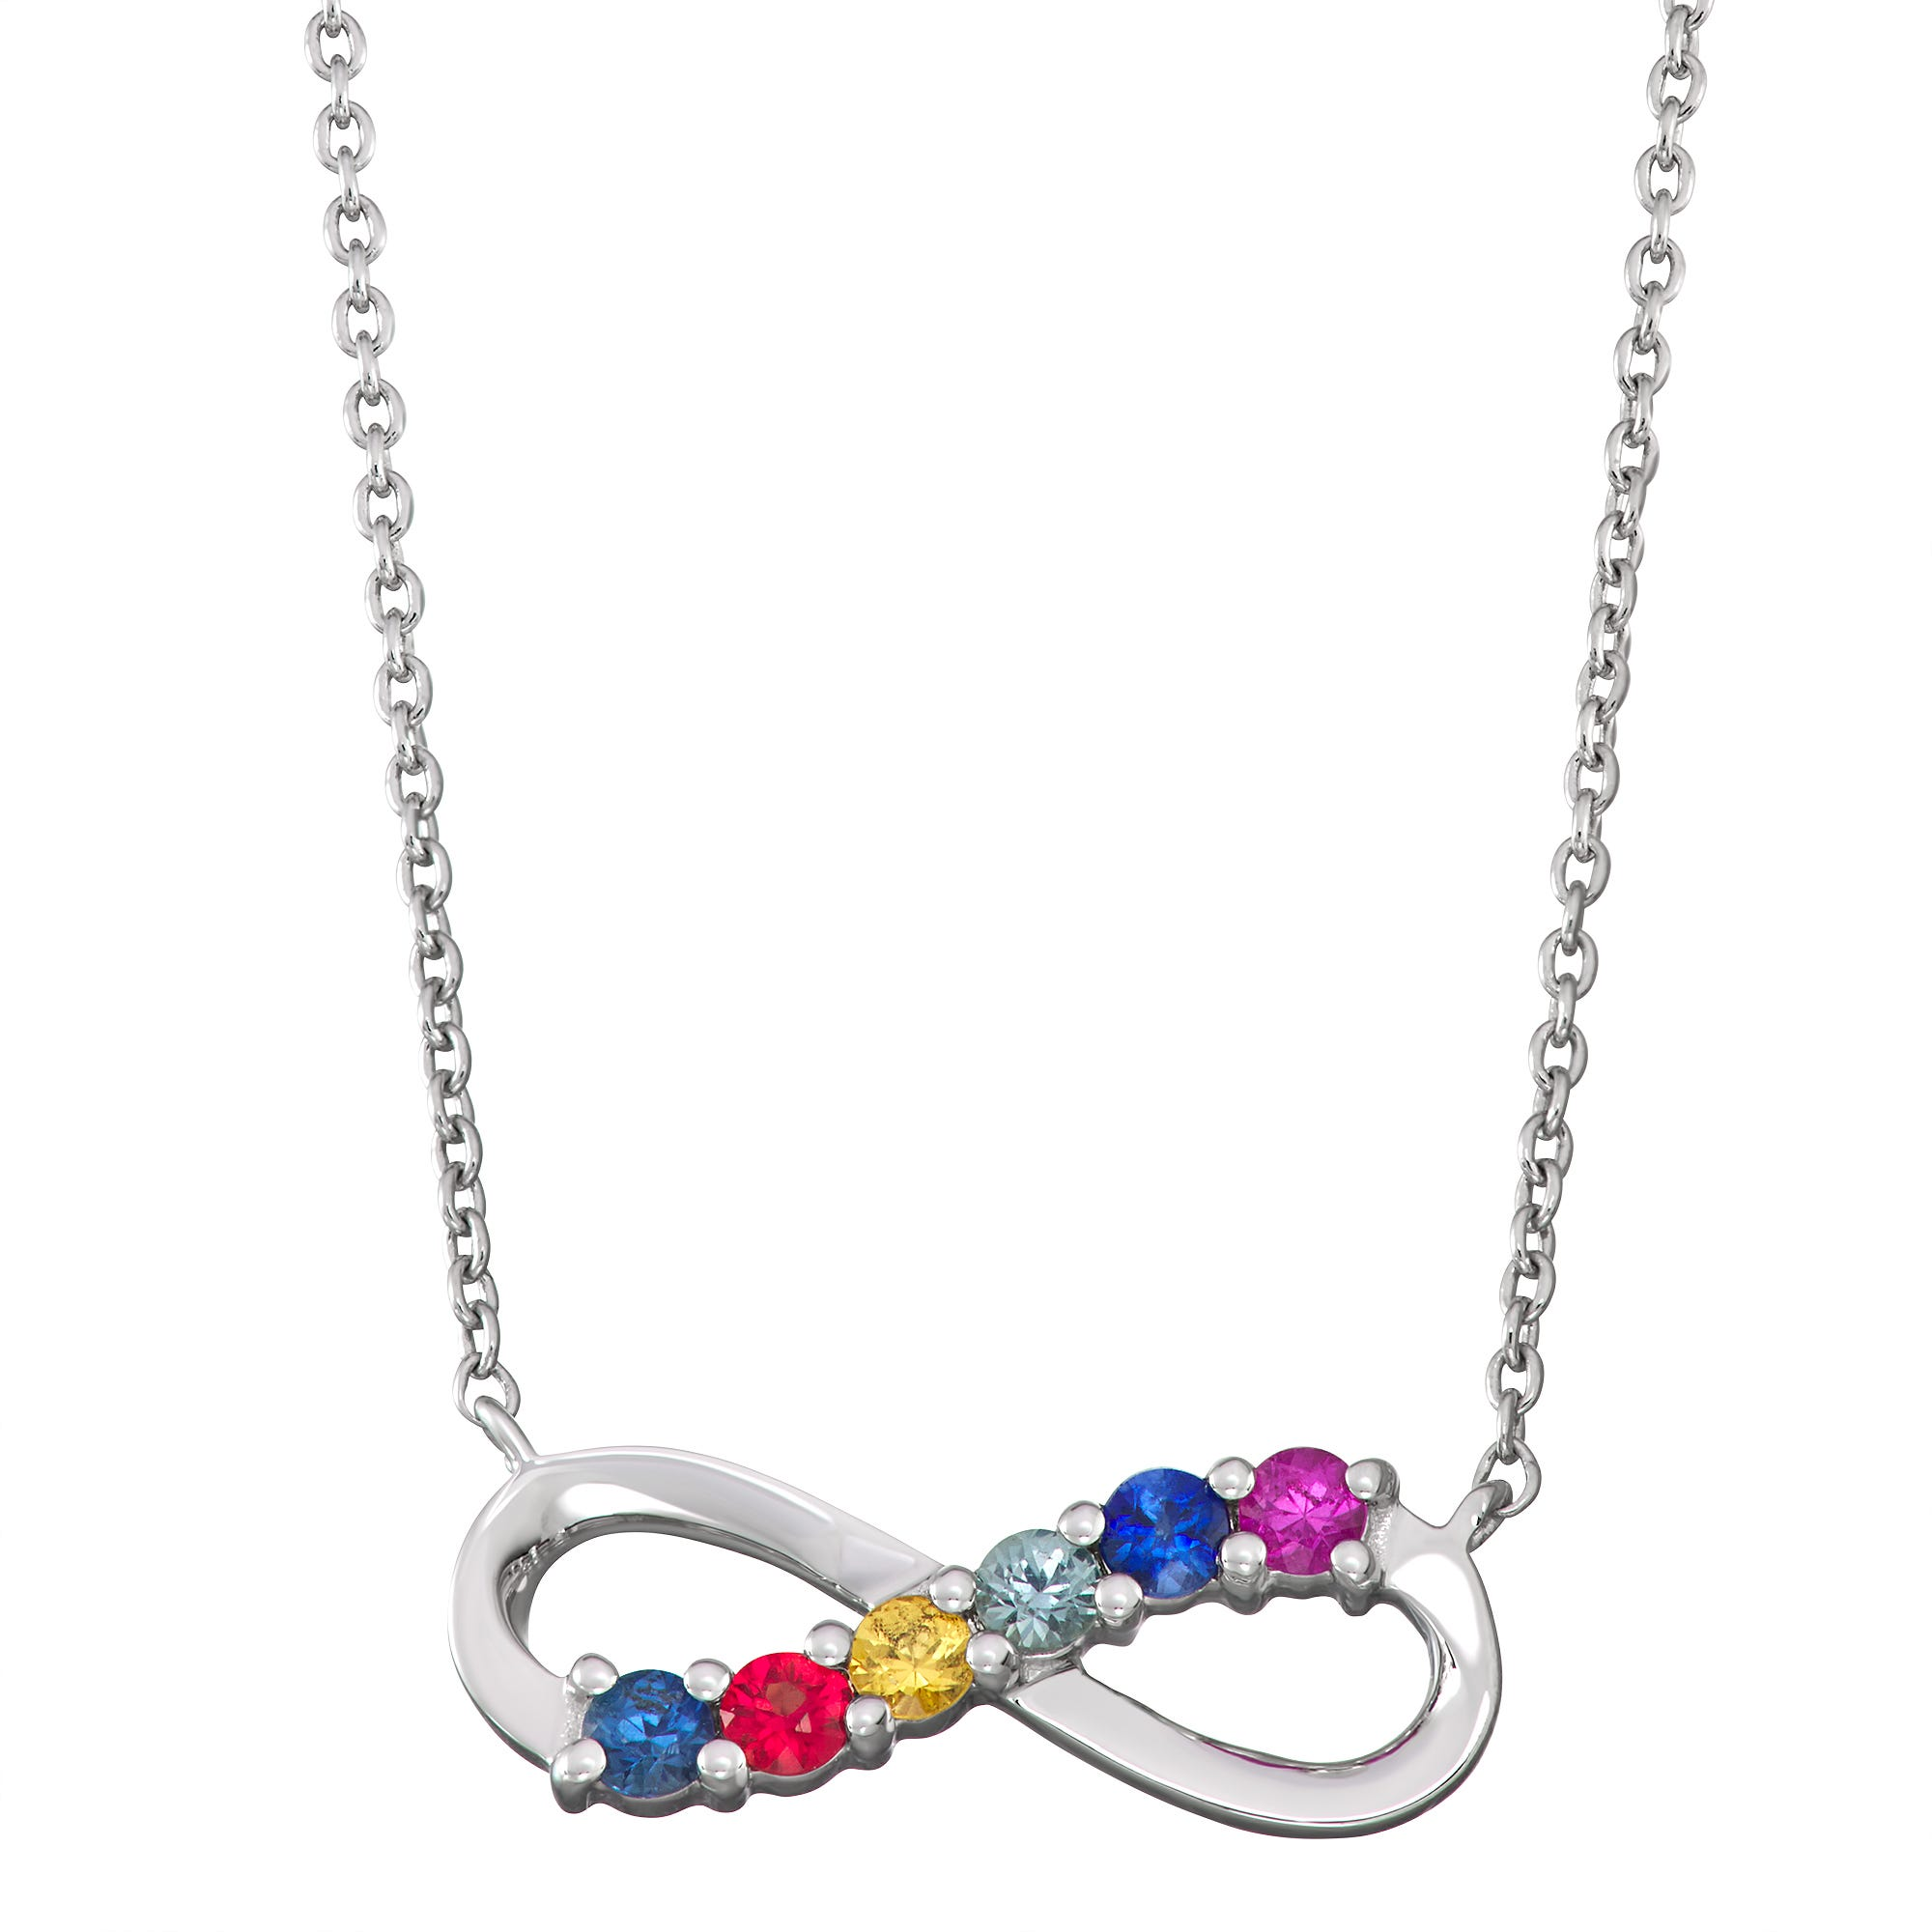 Mulit-Color Sapphire Infinity Necklace in 14k White Gold